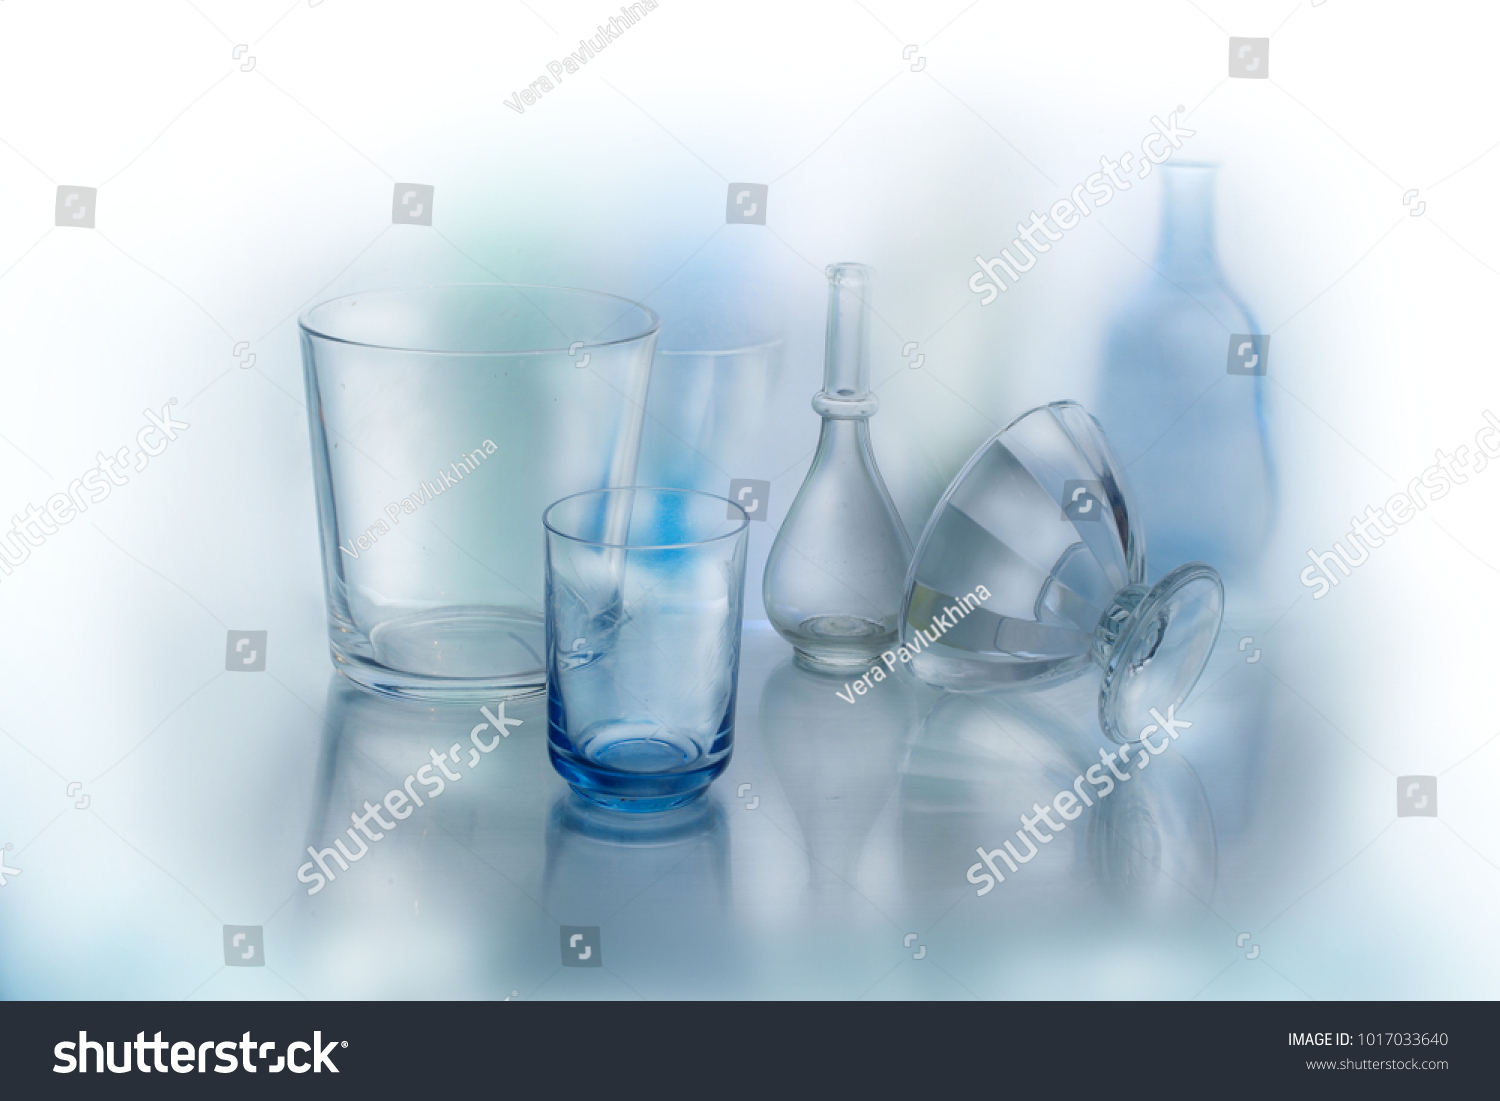 Interesting Bottles Glass Vases Bottles Interesting Lying On Stock Photo Edit Now